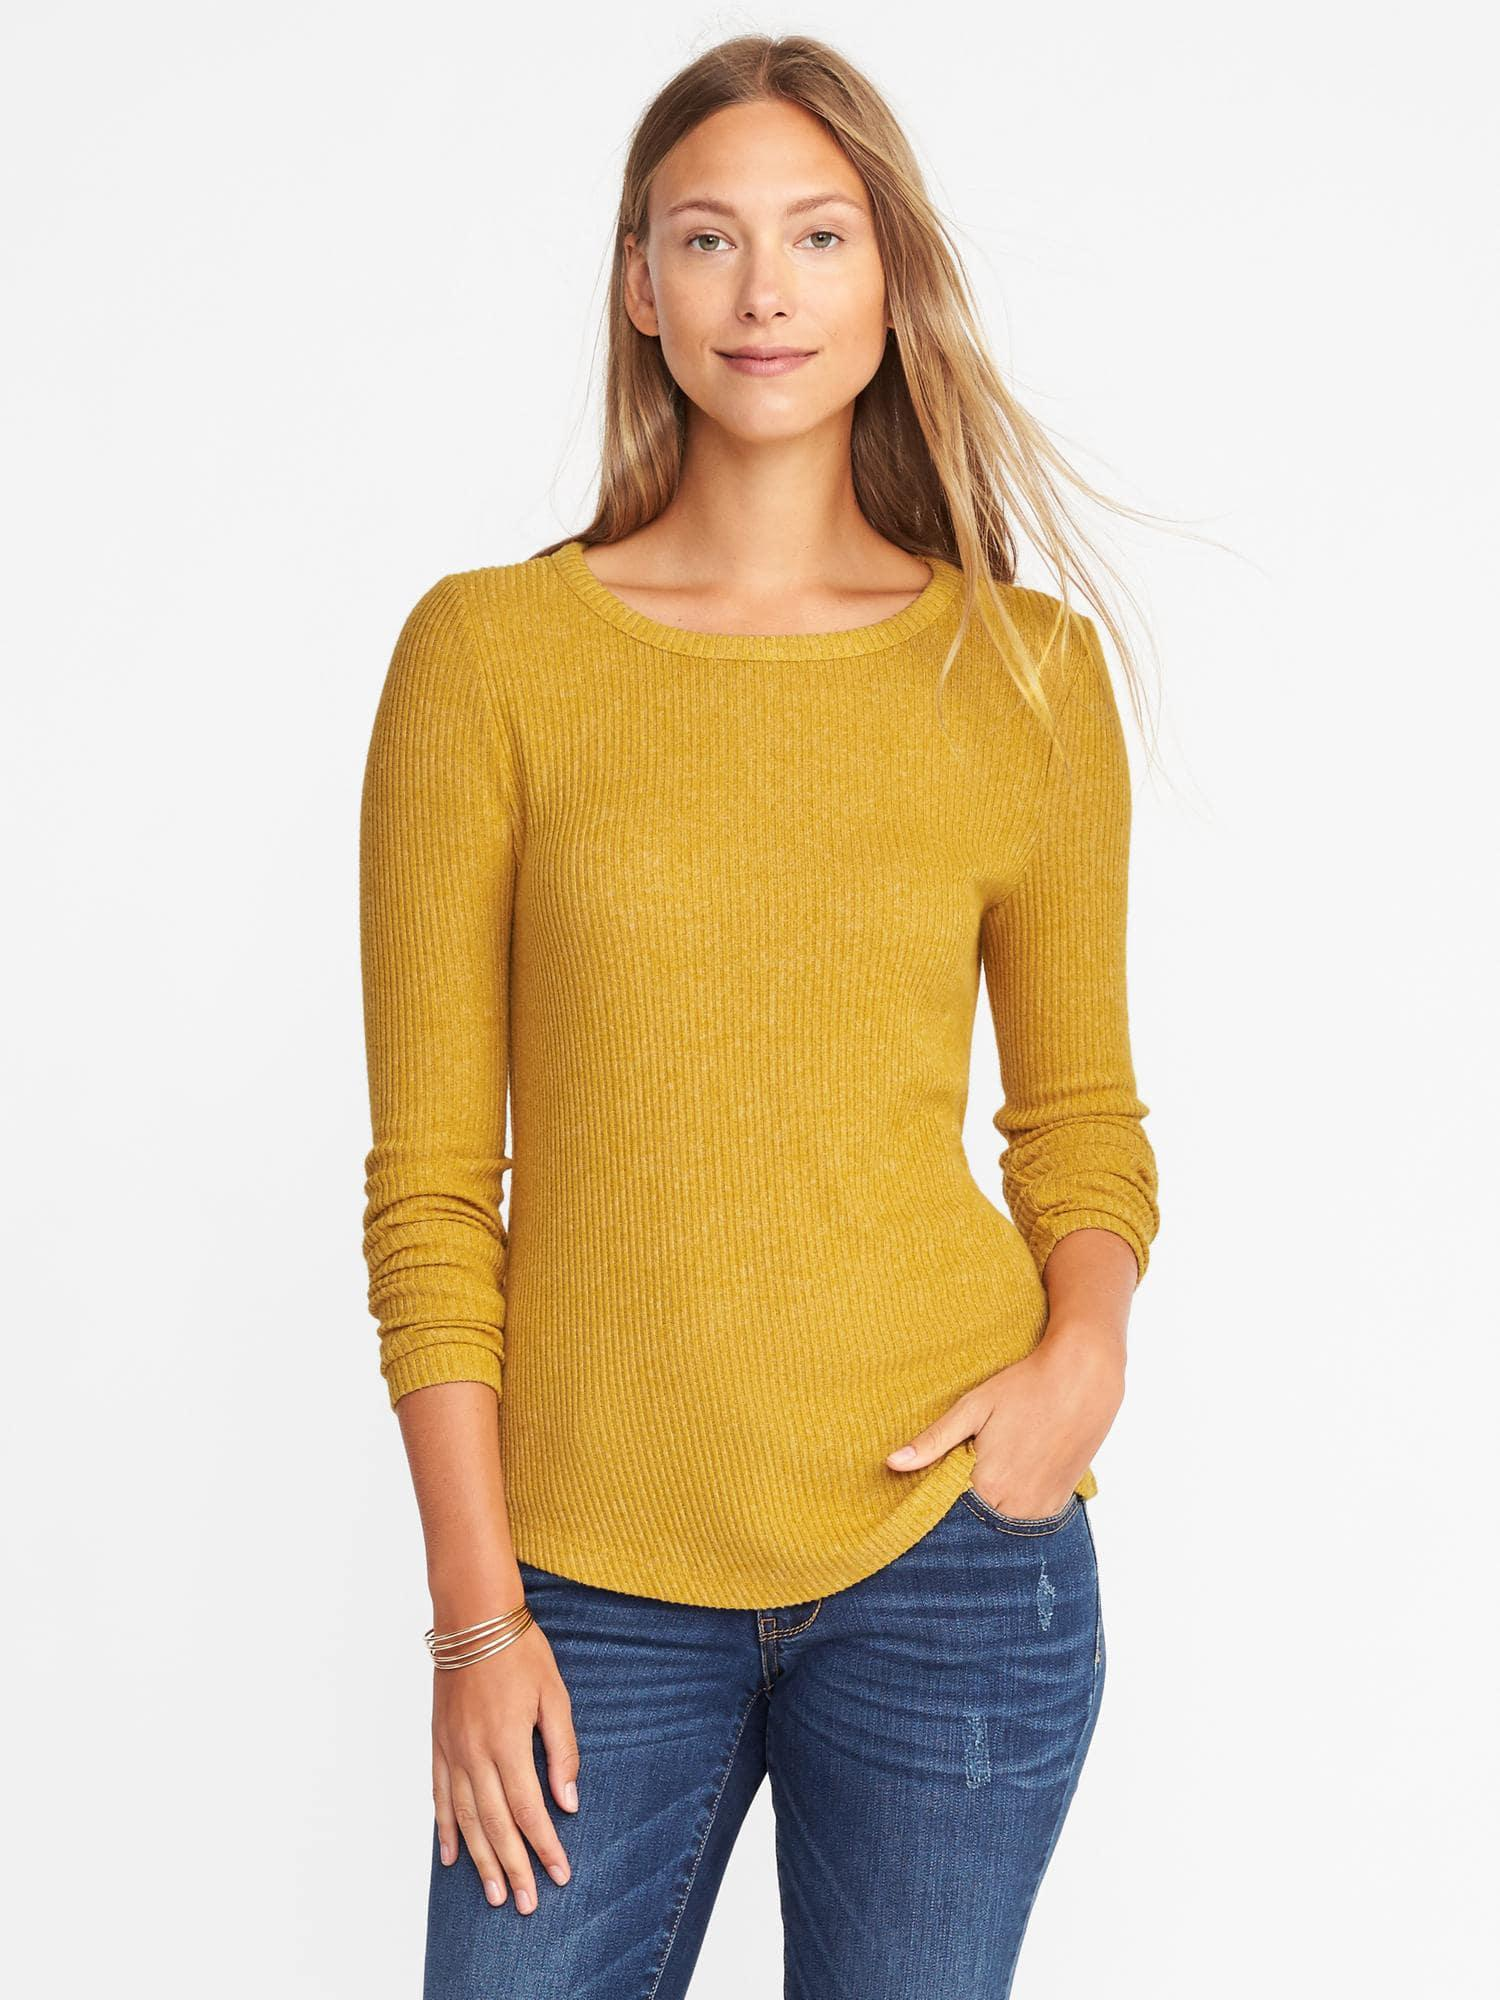 3a35e5db826 Old Navy Plush Rib-knit Pullover in Yellow - Lyst